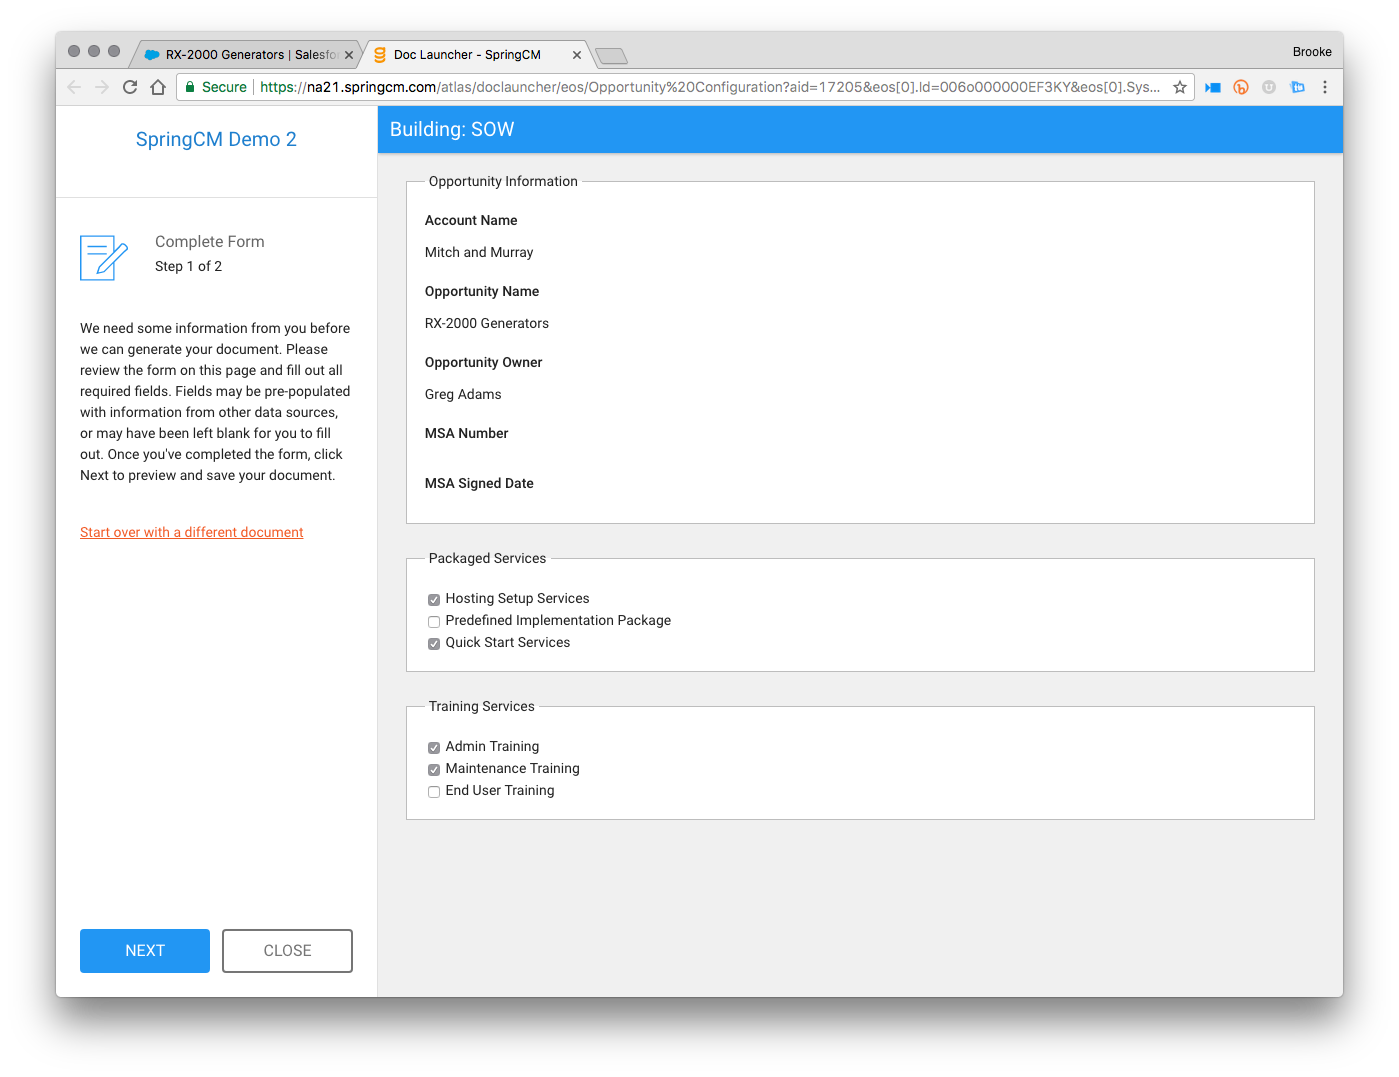 SpringCM screenshot: Generate documents easily via Salesforce or the SpringCM platform. Choose from pre-approved templates including a clause library, pulling data directly from Salesforce or other data sources.